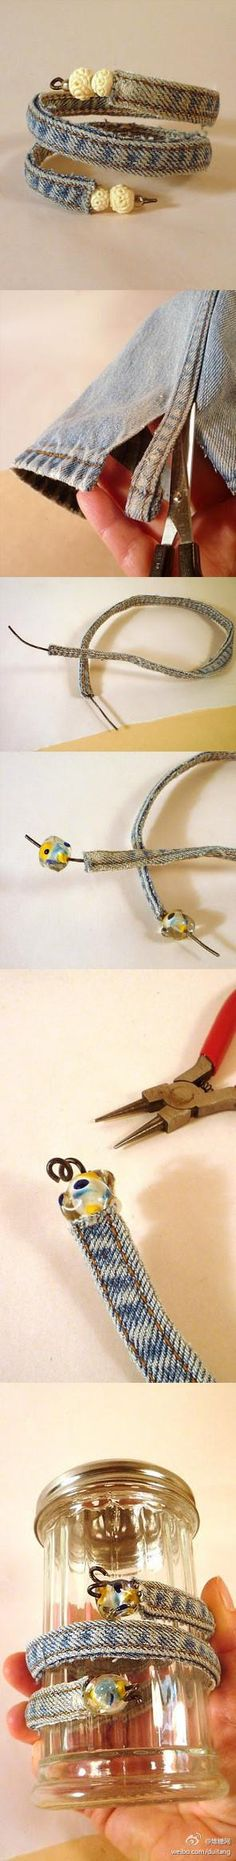 DIY Clothes DIY Refashion DIY Jeans Little Bracelet